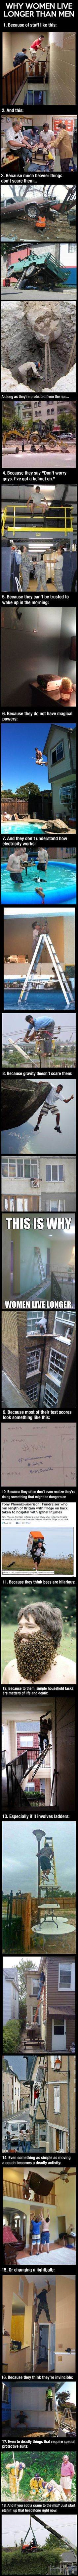 Why women live longer than men link!!!